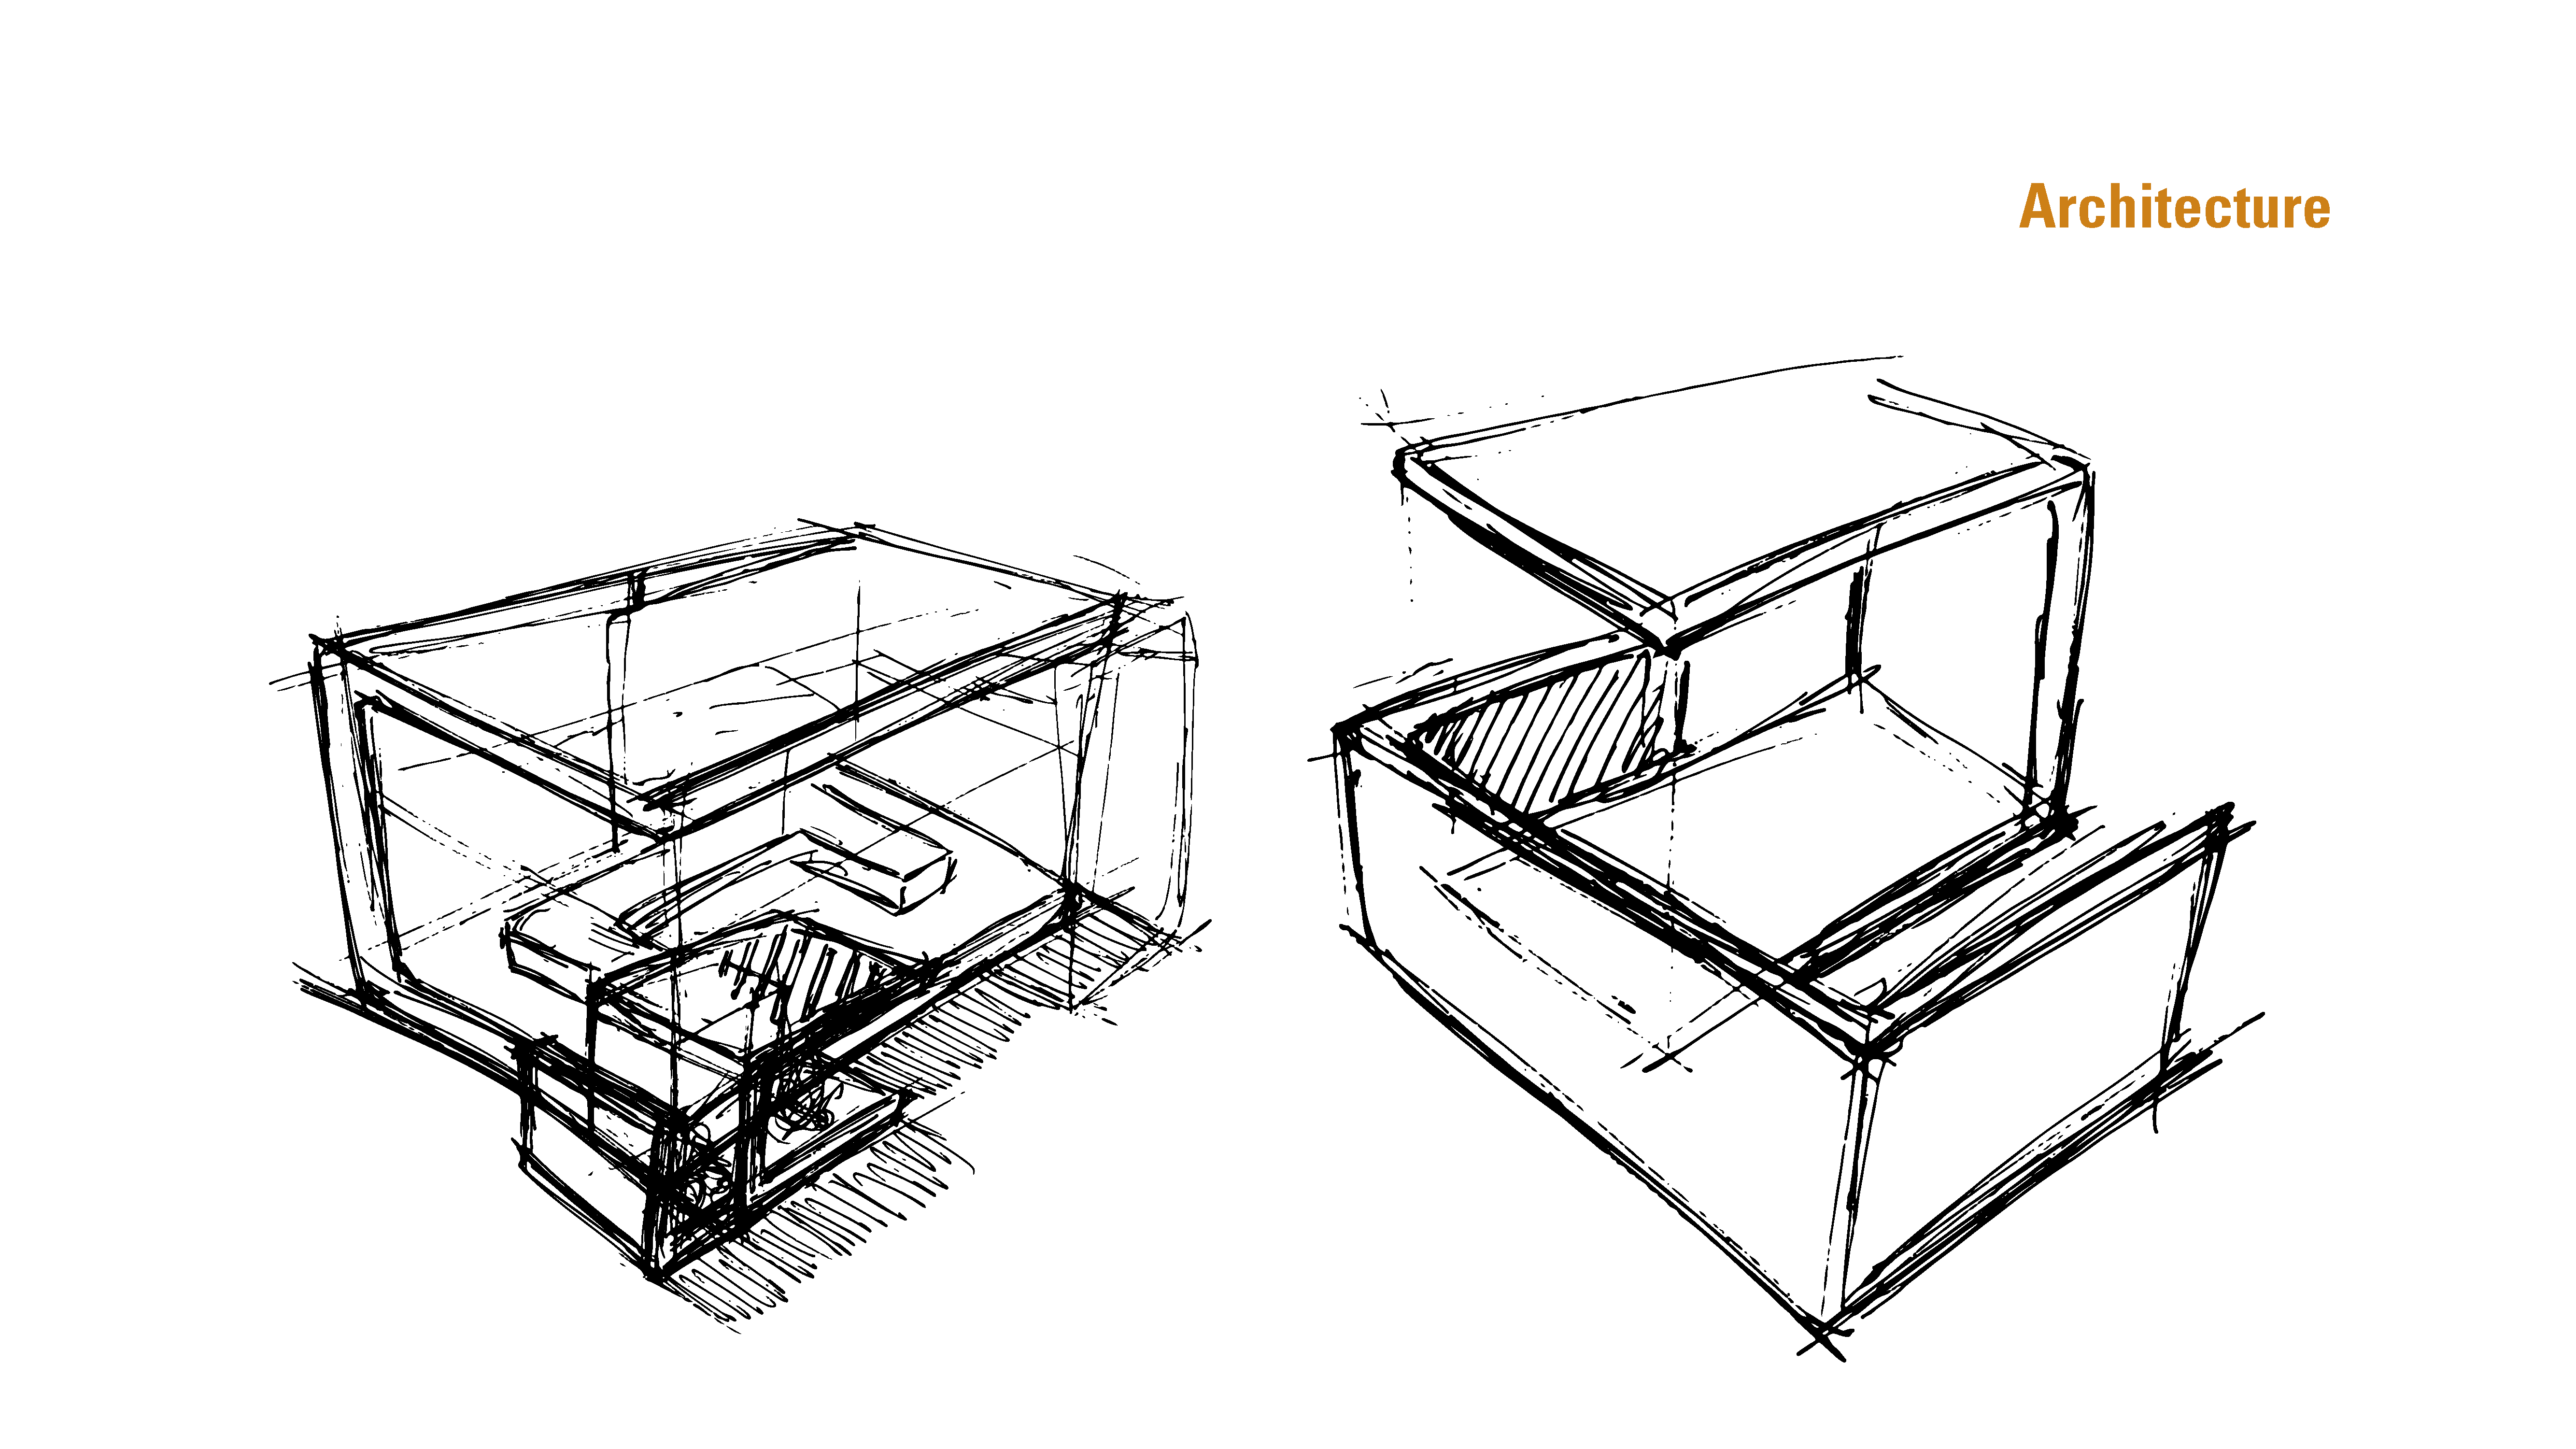 Fireplace Design - Sketch